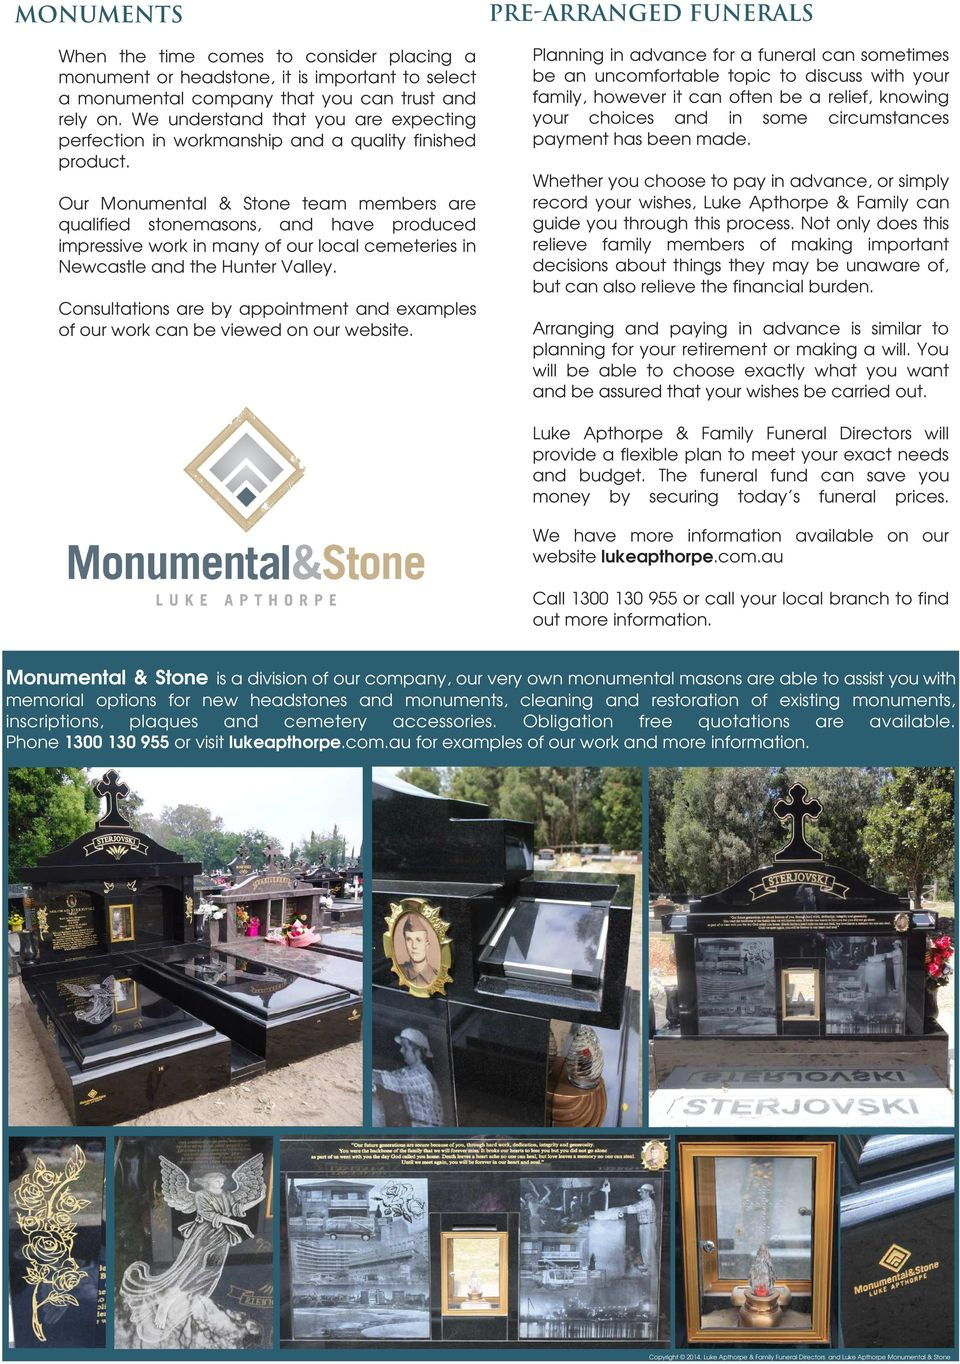 Our Monumental & Stone team members are qualified stonemasons, and have produced impressive work in many of our local cemeteries in Newcastle and the Hunter Valley.